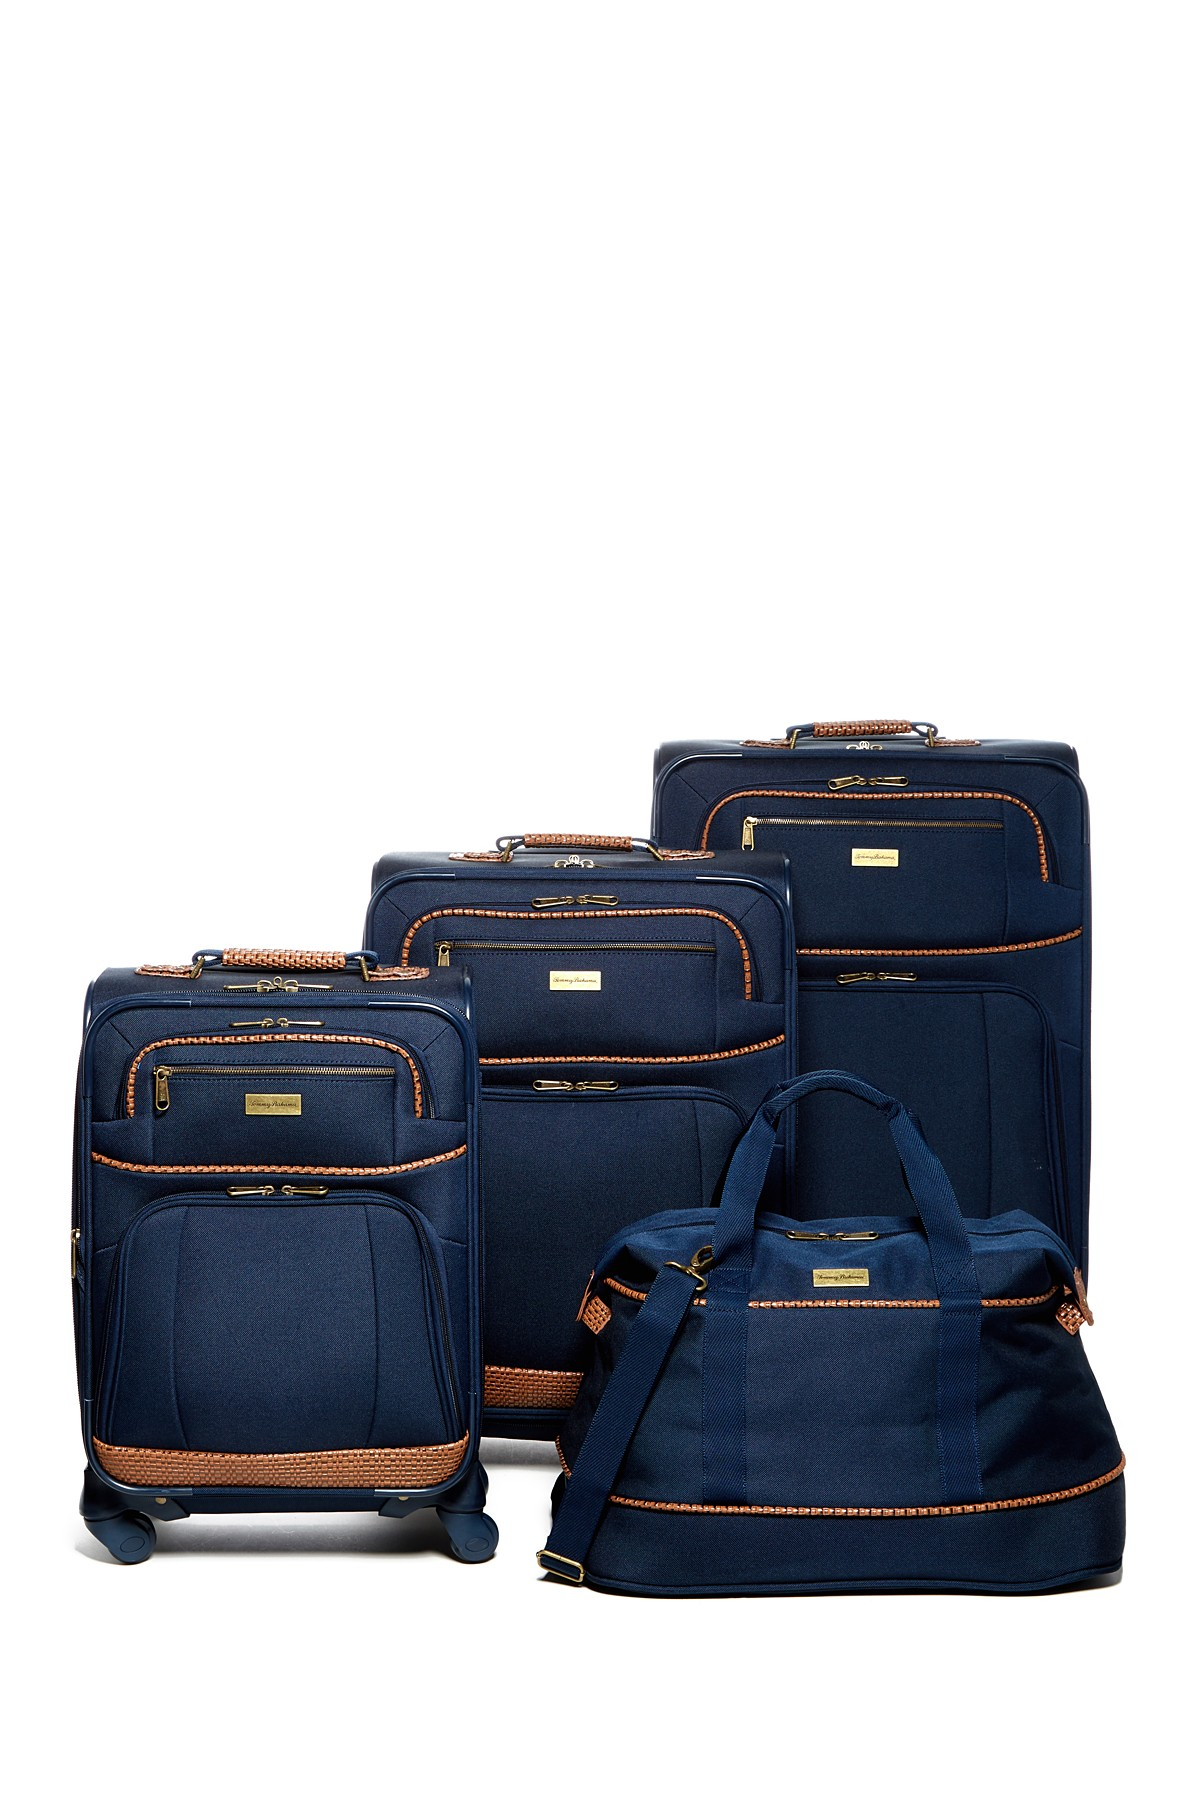 Lyst Tommy Bahama Mojito 4 Piece Luggage Set In Blue